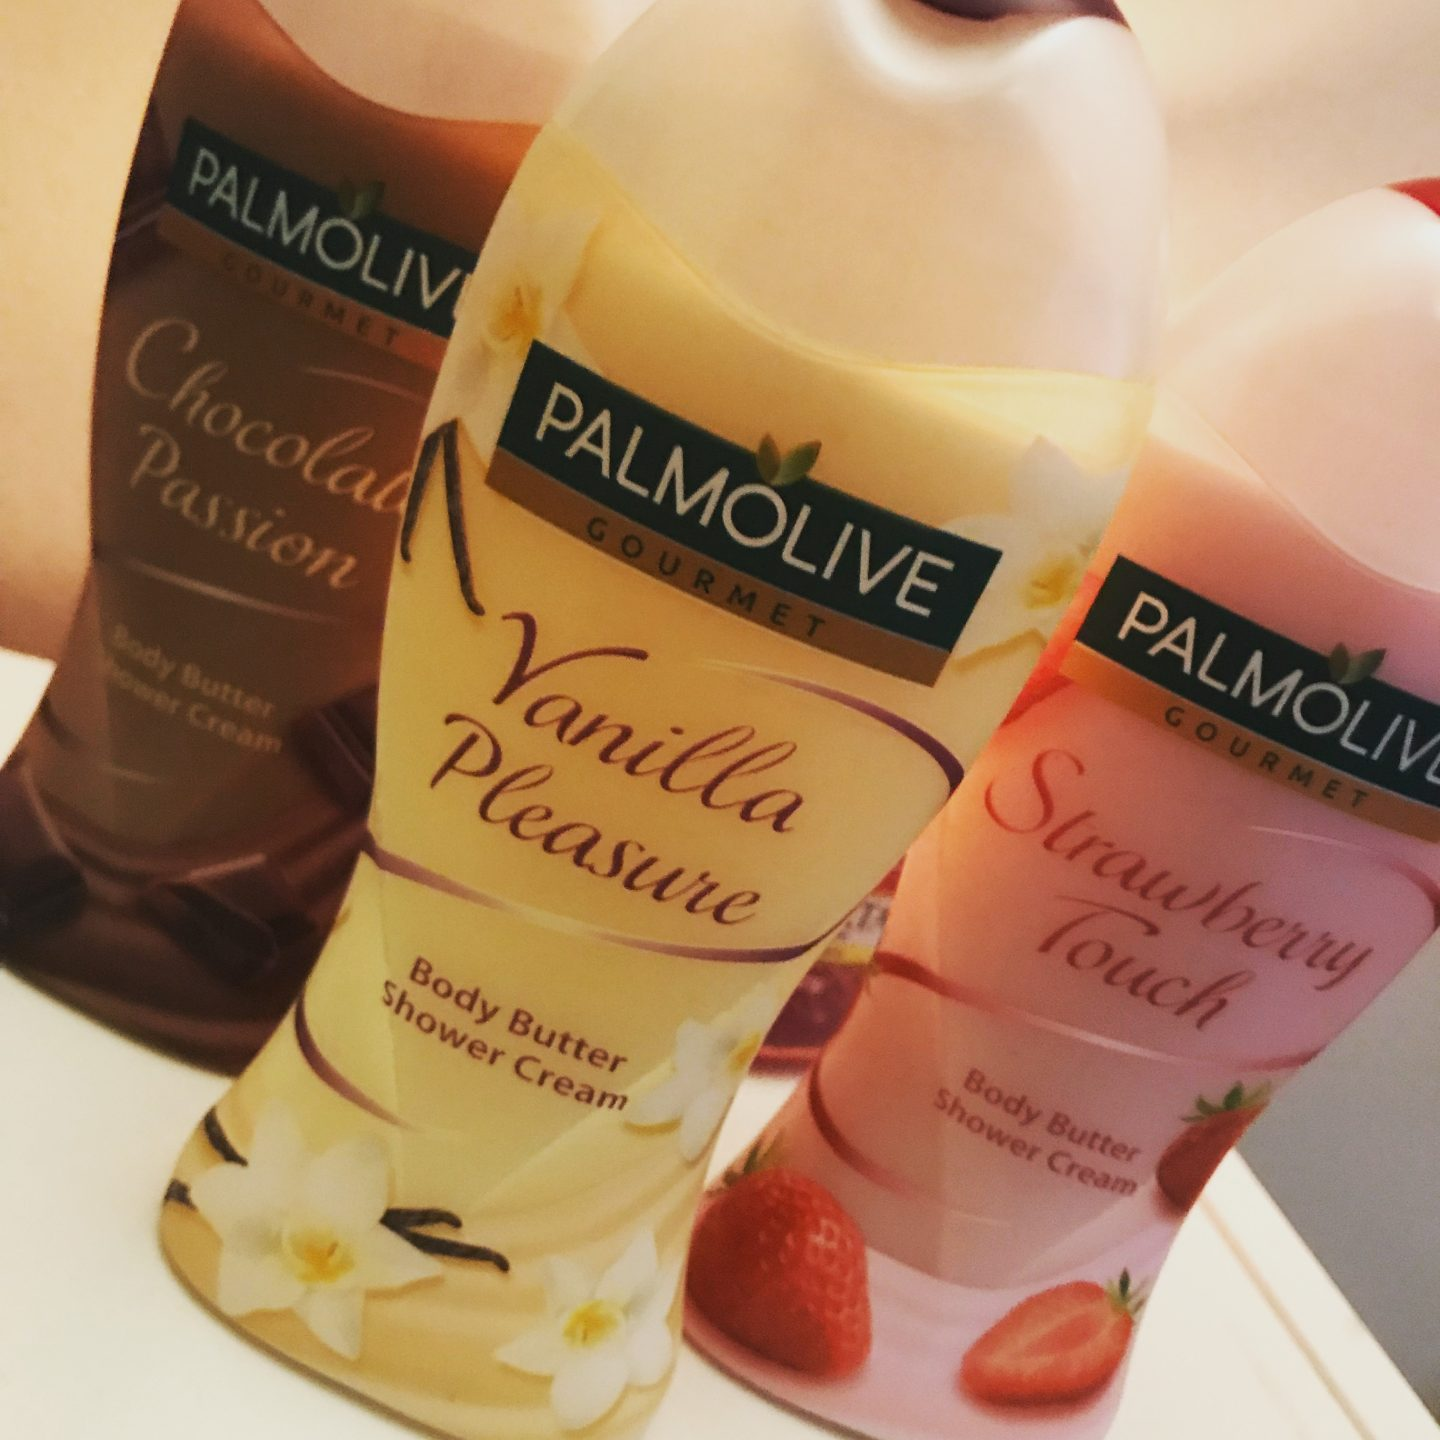 Palmolive shower gel